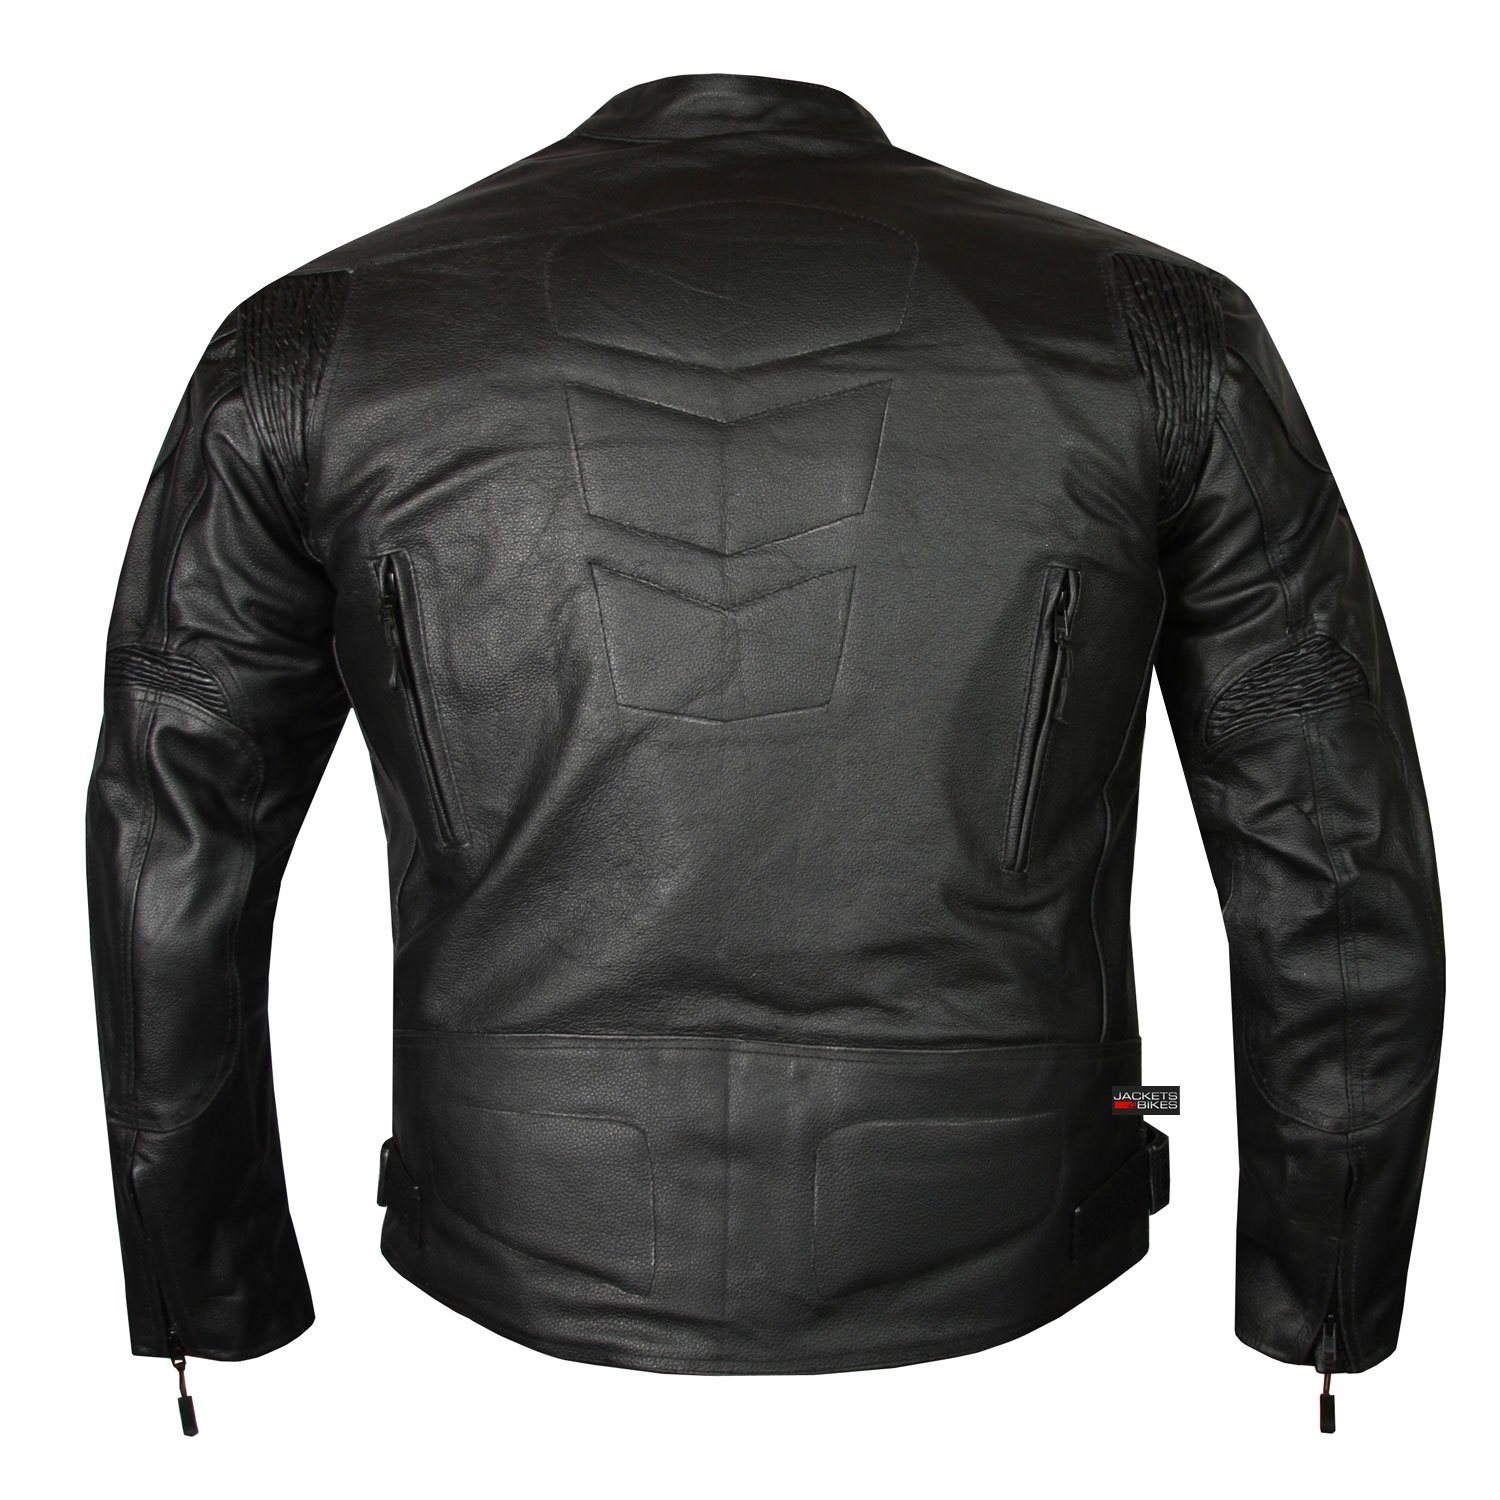 HIGHLY VENTILATED MOTORCYCLE LEATHER CRUISER ARMOR TOURING JACKET FOR MEN XXL